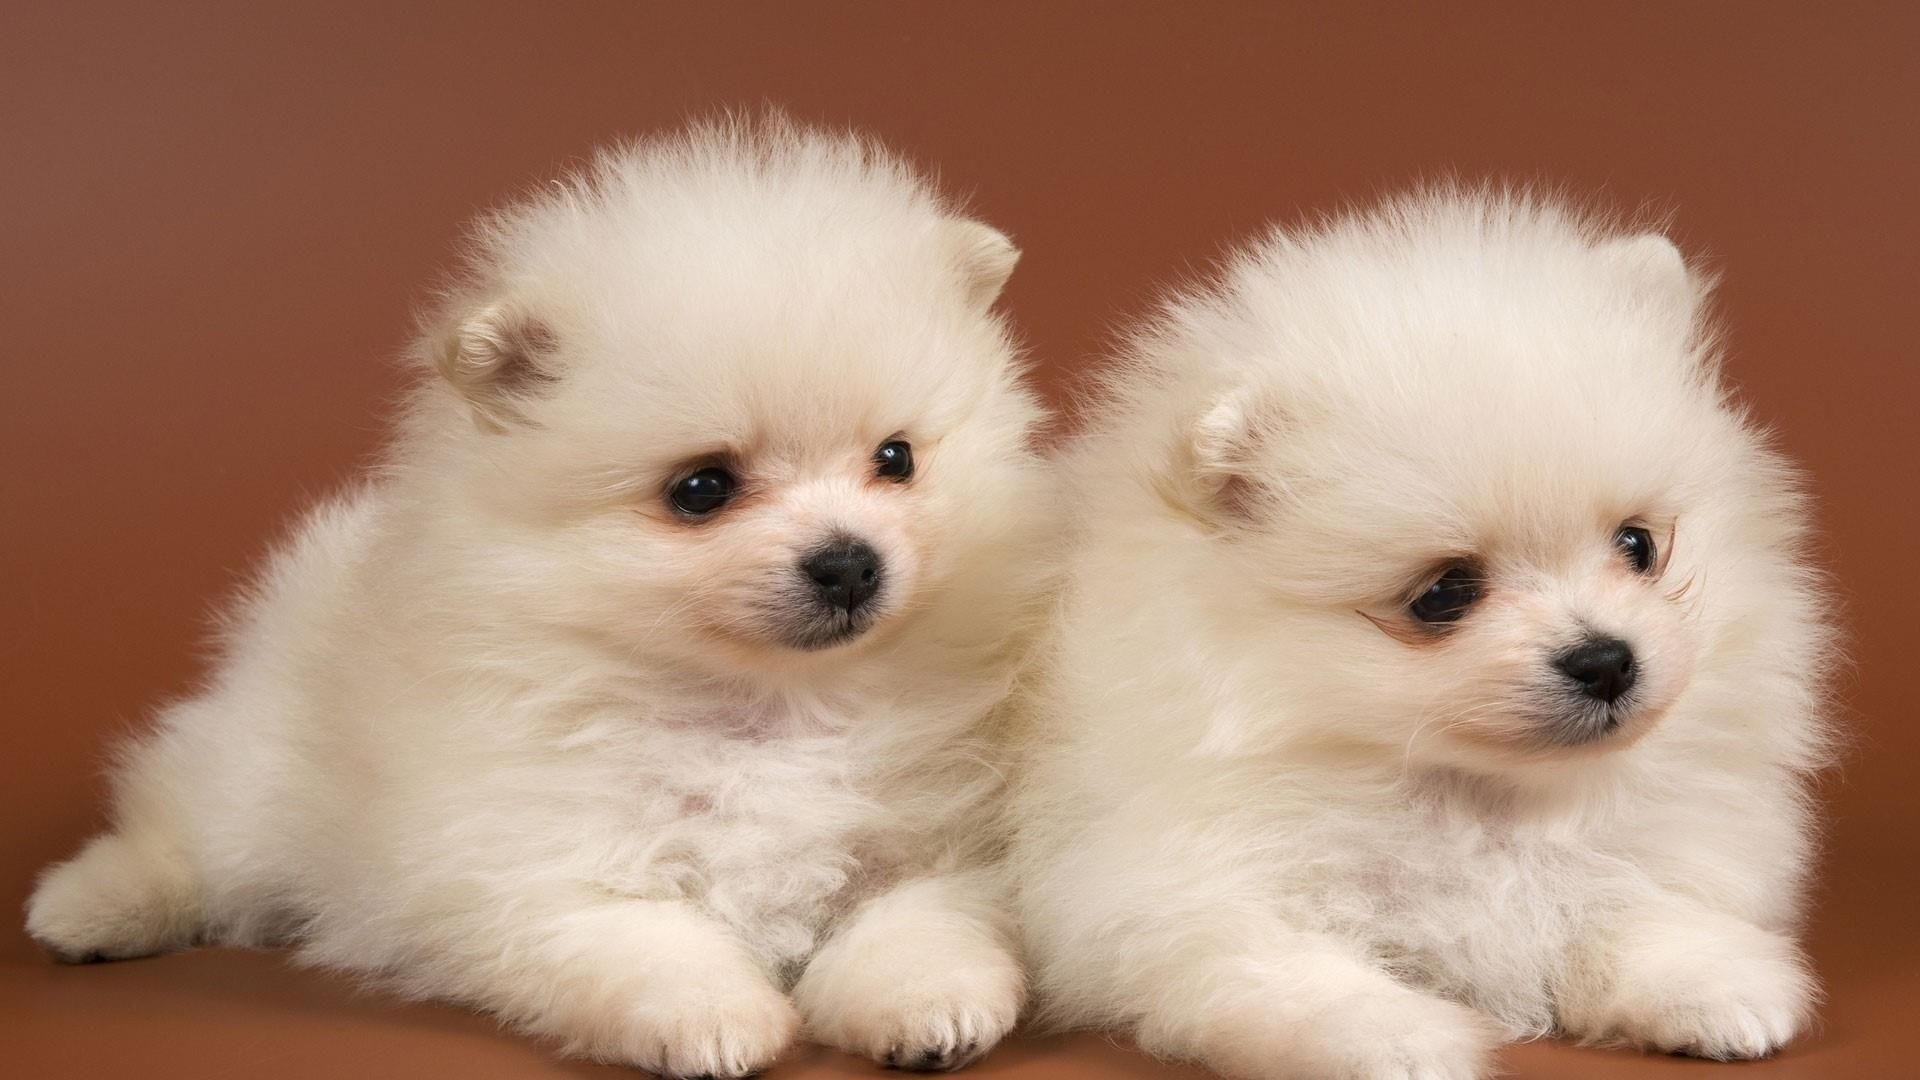 cute baby dogs wallpaper | wallpaper studio 10 | tens of thousands